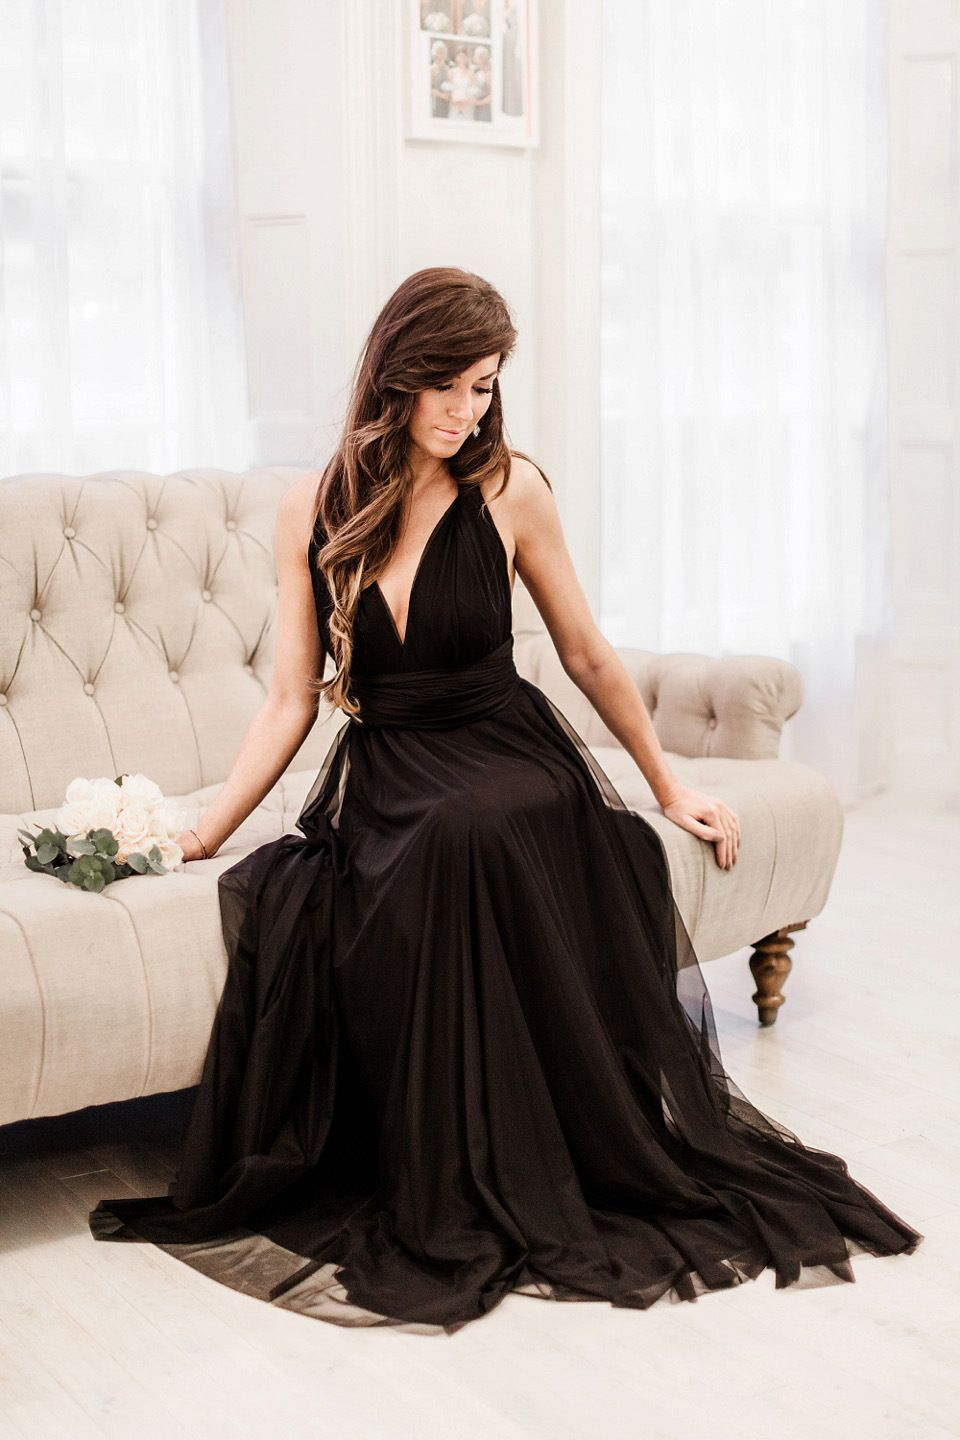 Twobirds bridesmaids launches new tulle collection for spring 2015 black full length tulle bridesmaids dress from the twobirds bridesmaids collection for spring 2015 photography ombrellifo Choice Image